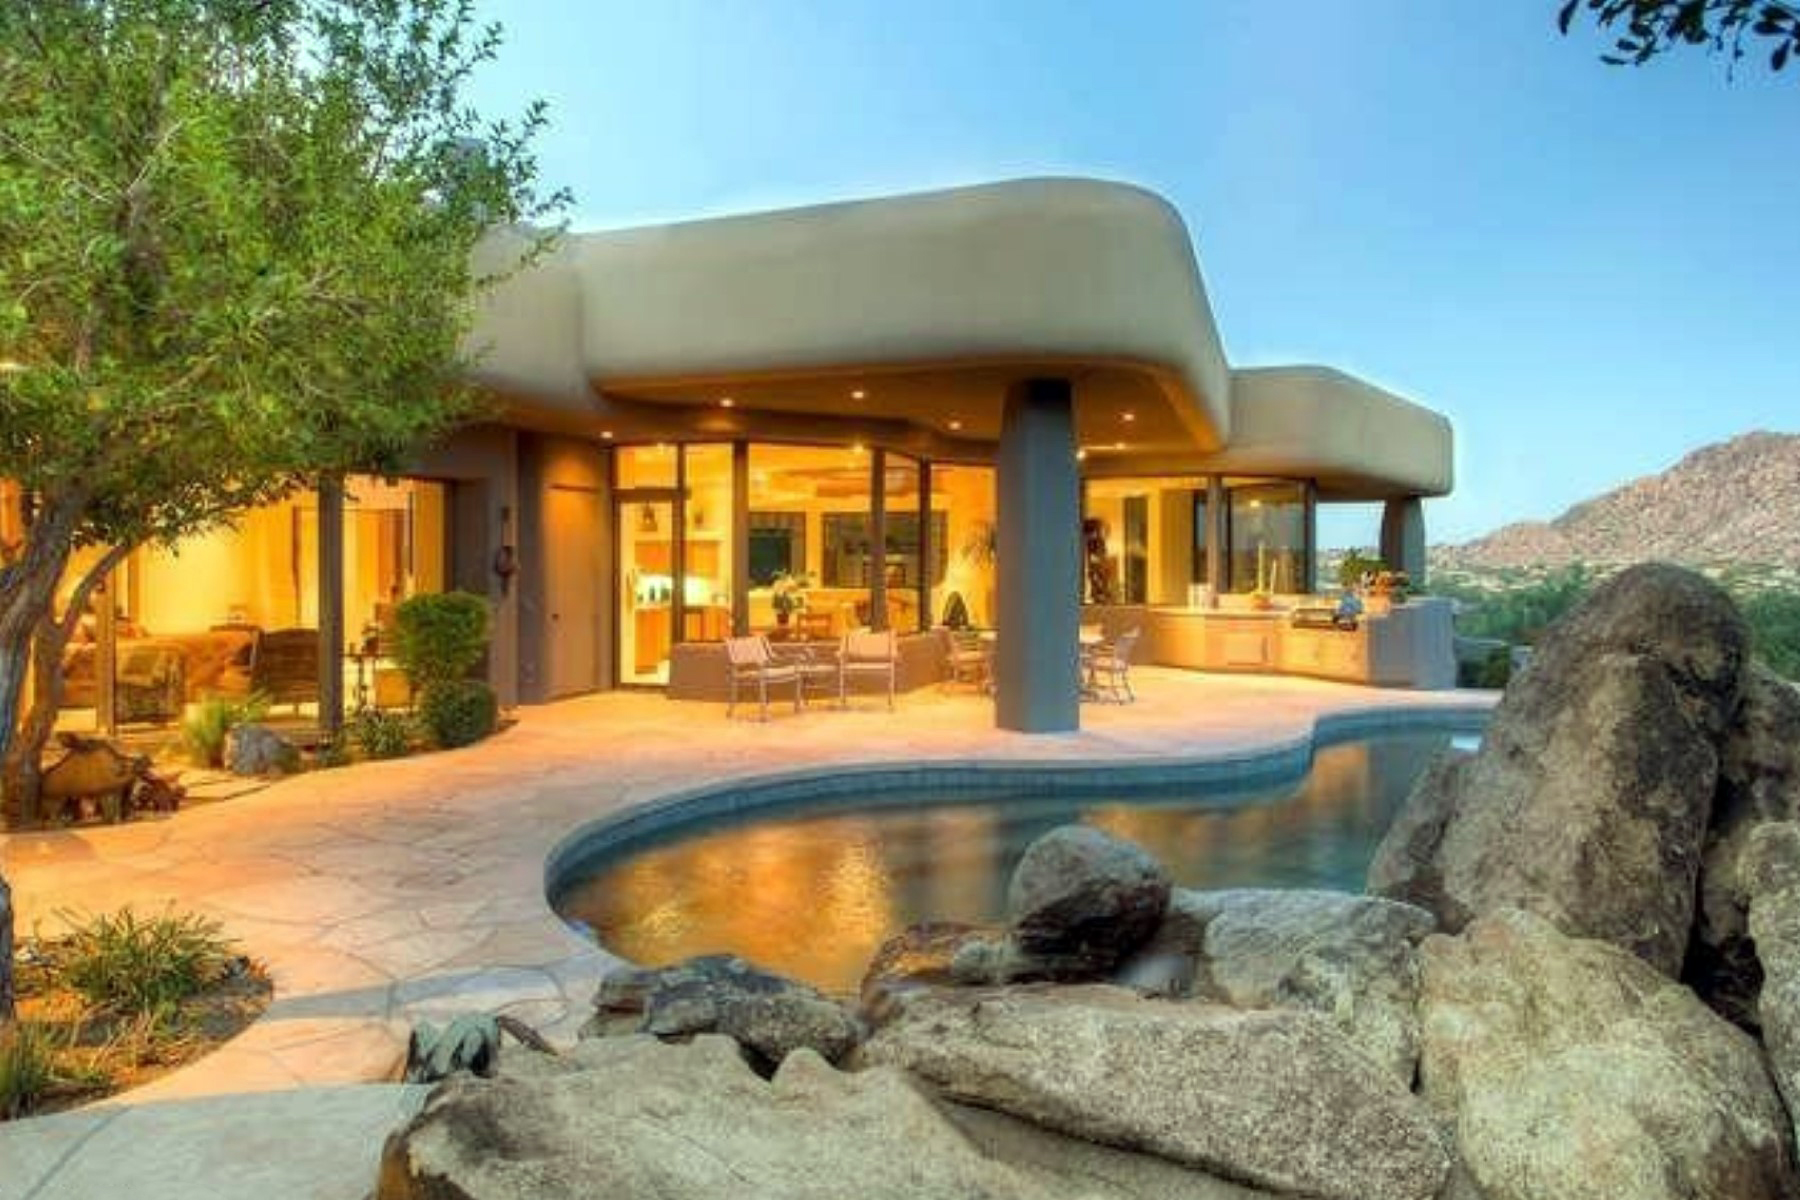 Single Family Home for Sale at Design Masterpiece in Hillside Villas at Desert Highlands 10040 E Happy Valley Rd #1027 Scottsdale, Arizona 85255 United States